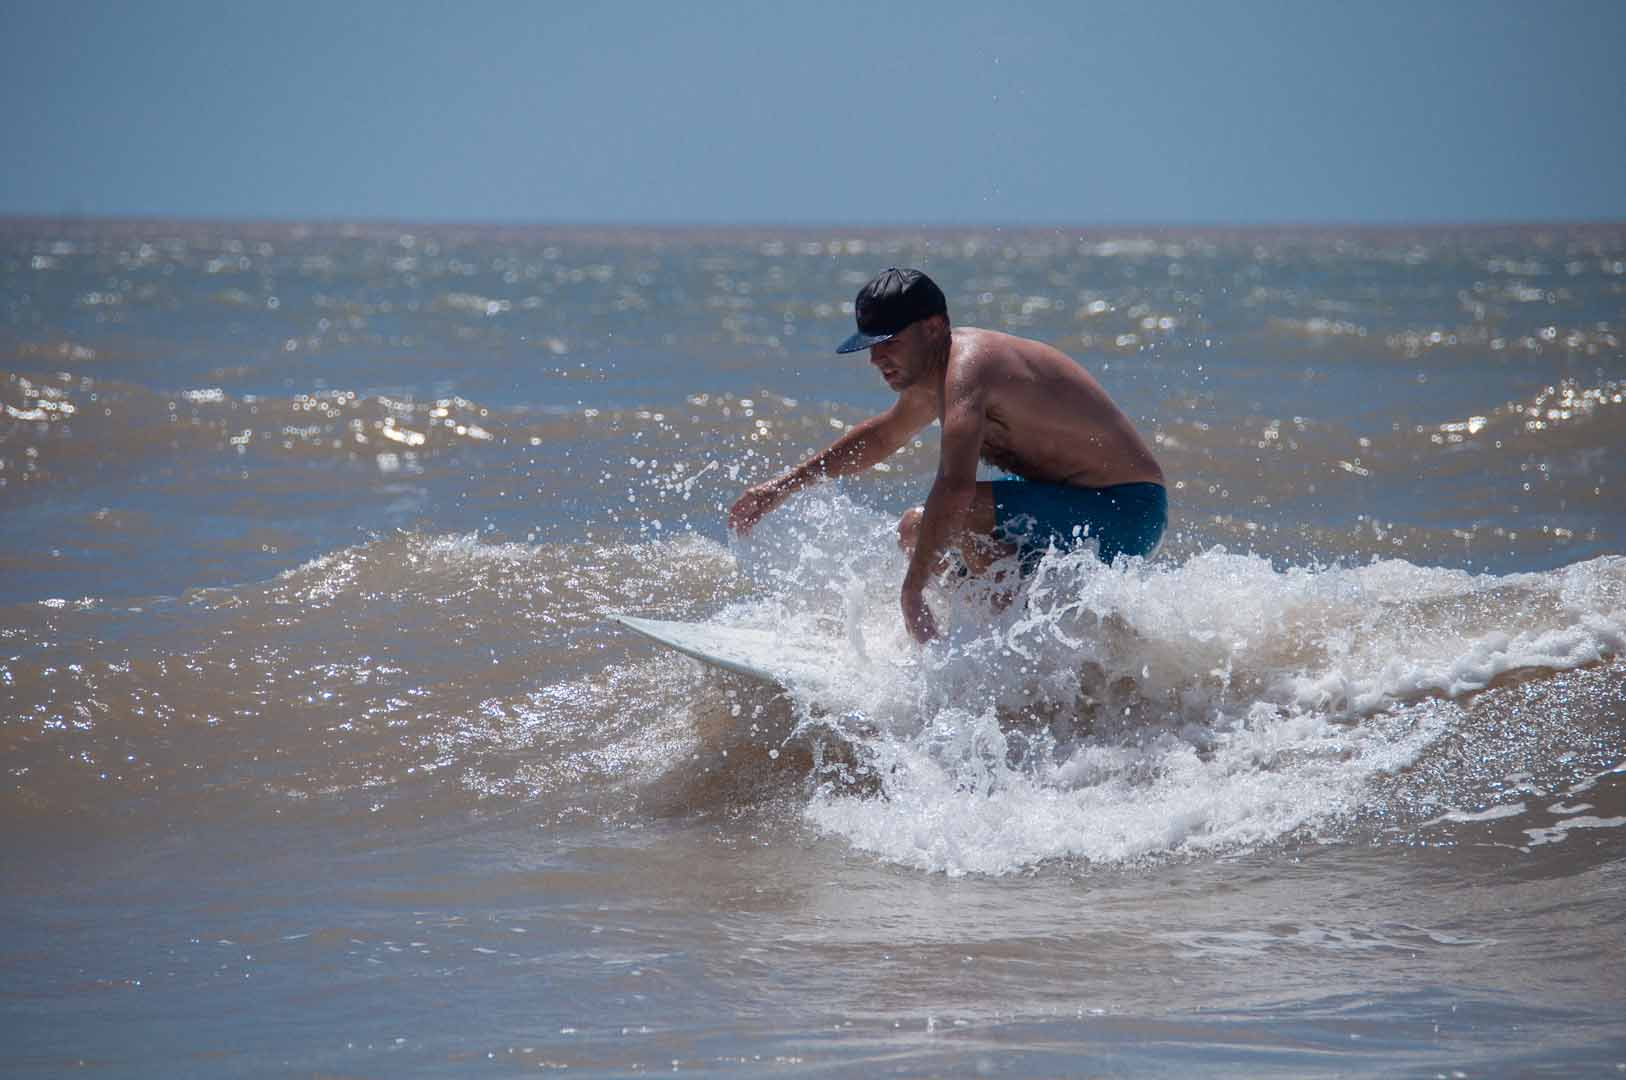 SurfsideLateJune_20150627_140